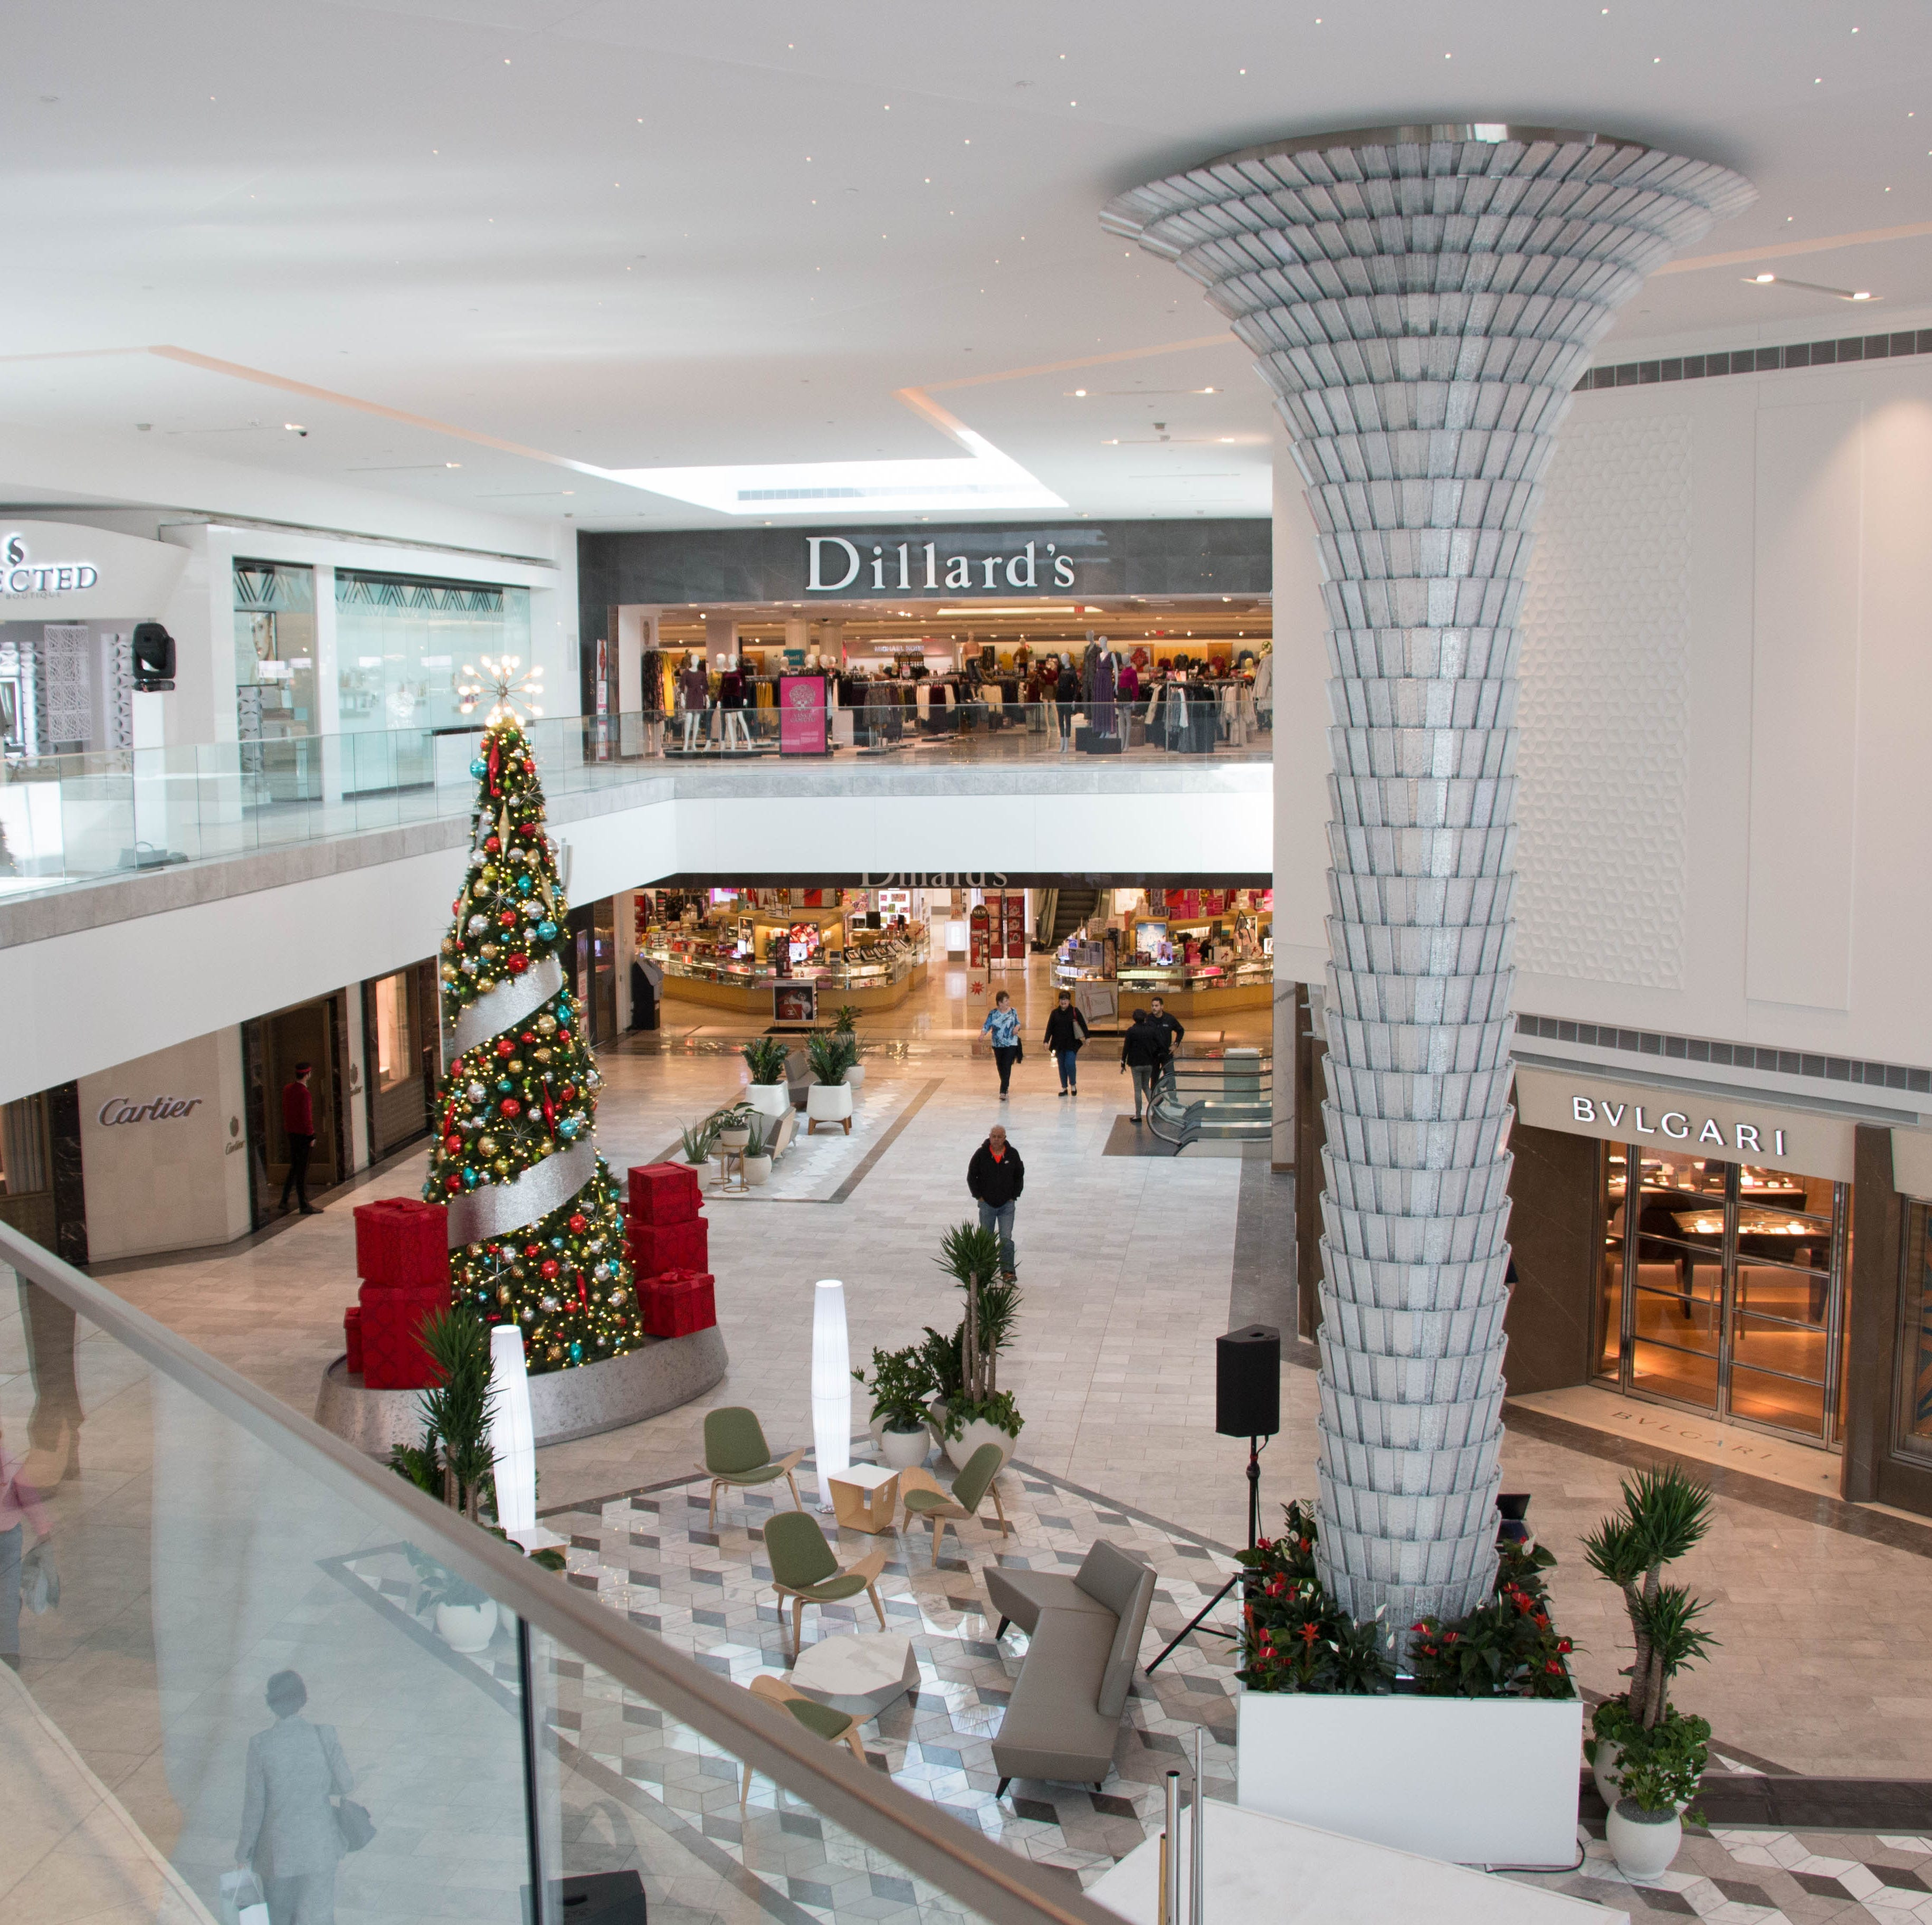 Malls — yes, malls — are likely to benefit from shopping surge as they reinvent